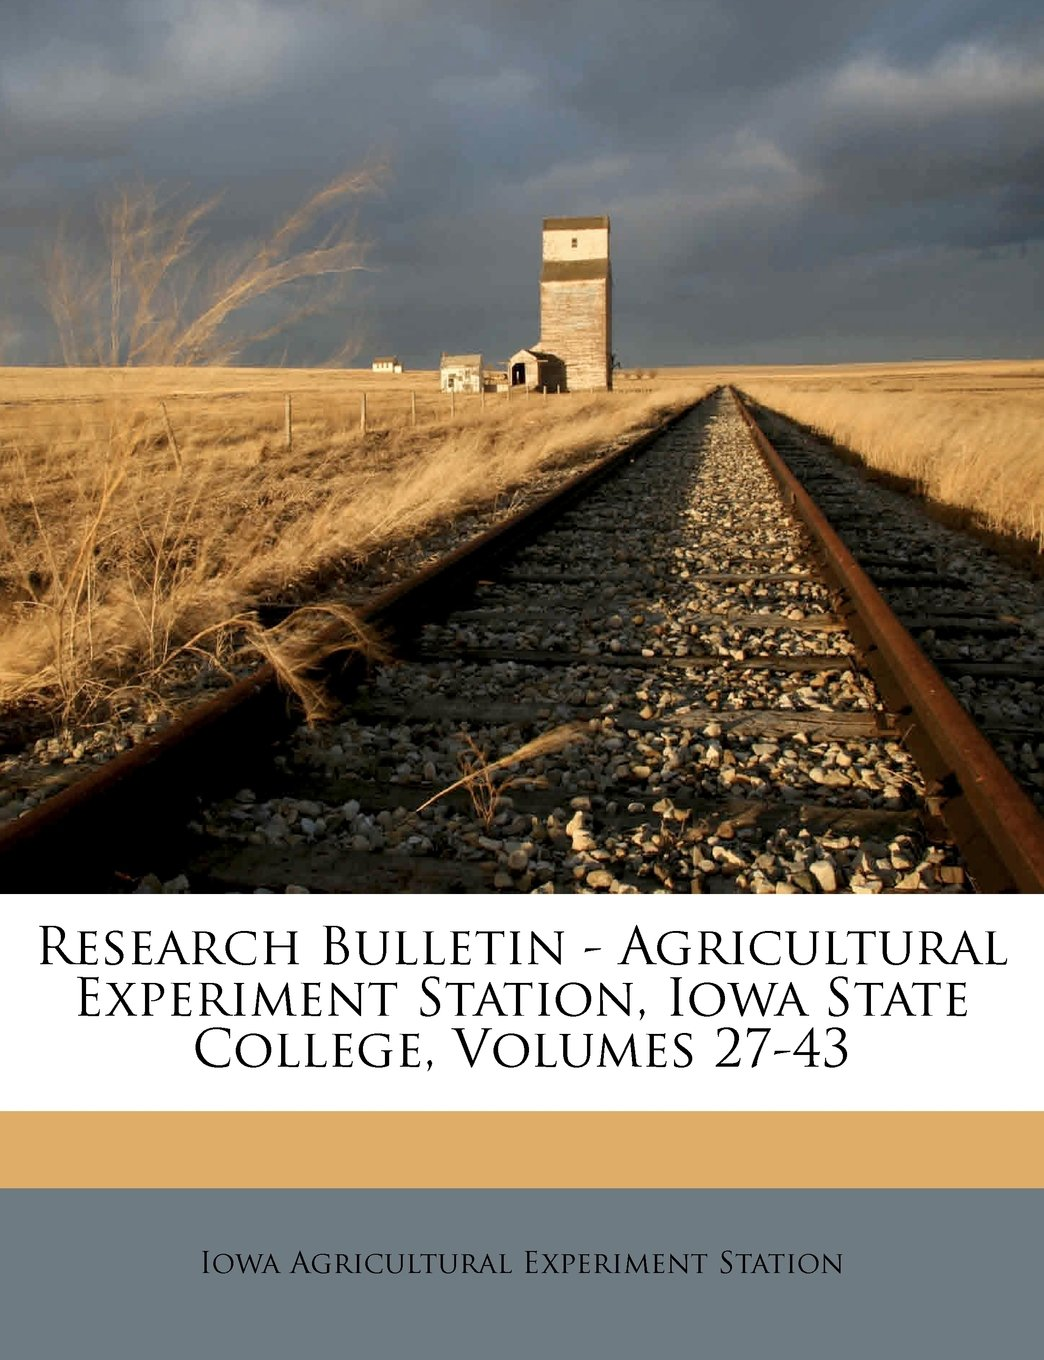 Research Bulletin - Agricultural Experiment Station, Iowa State College, Volumes 27-43 pdf